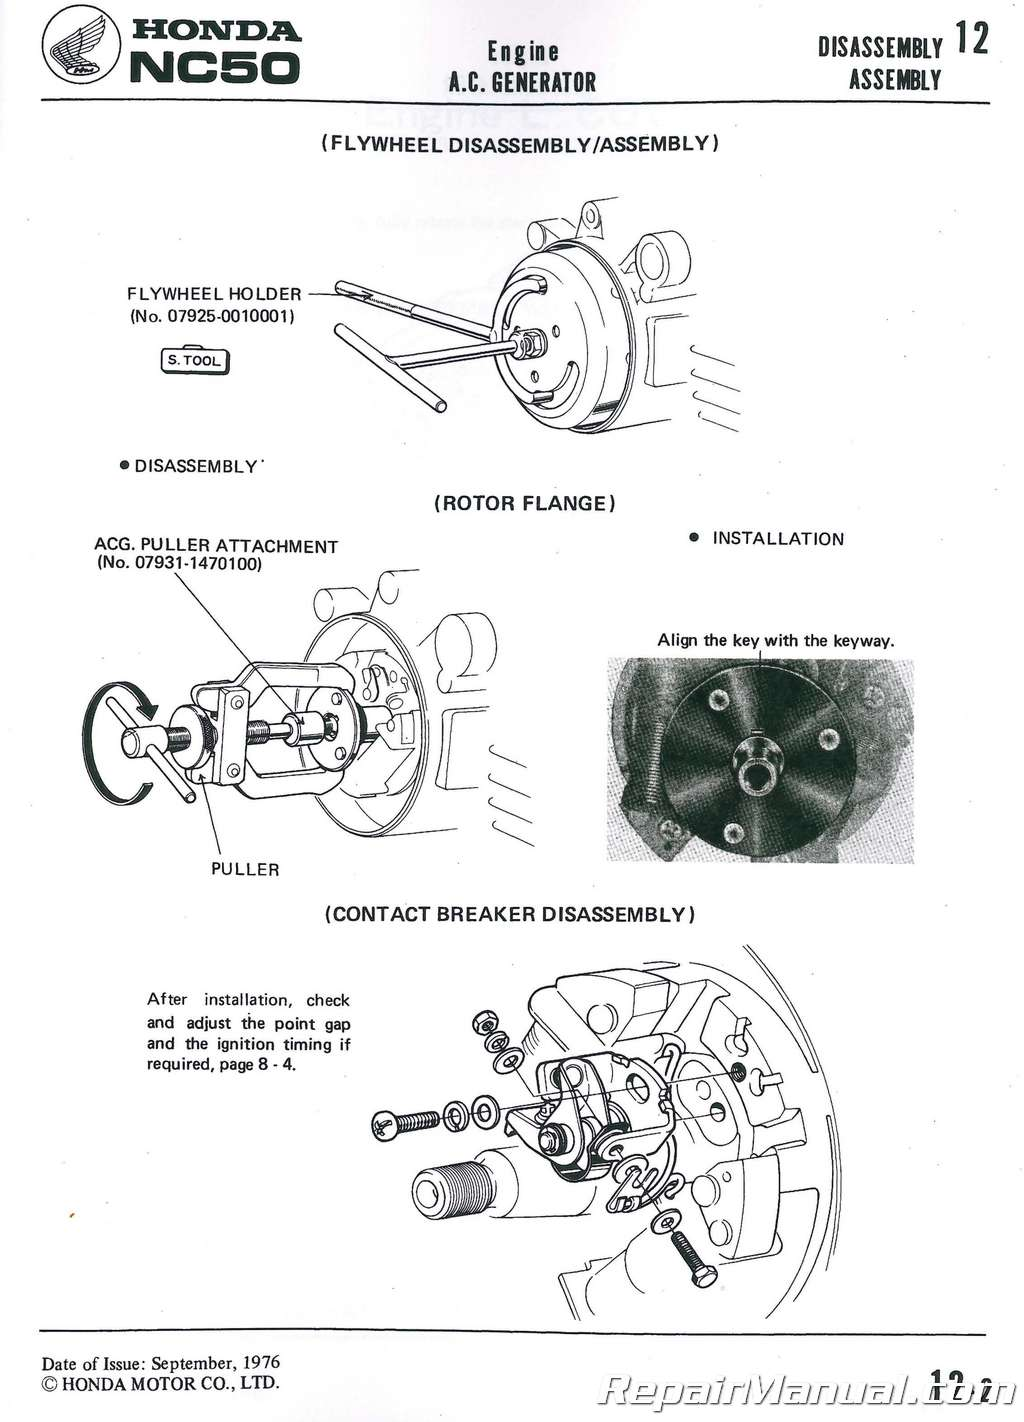 hight resolution of e leite 50cc honda engine diagram wiring diagram expert 1982 honda express nc50 wiring diagram honda express wiring diagram